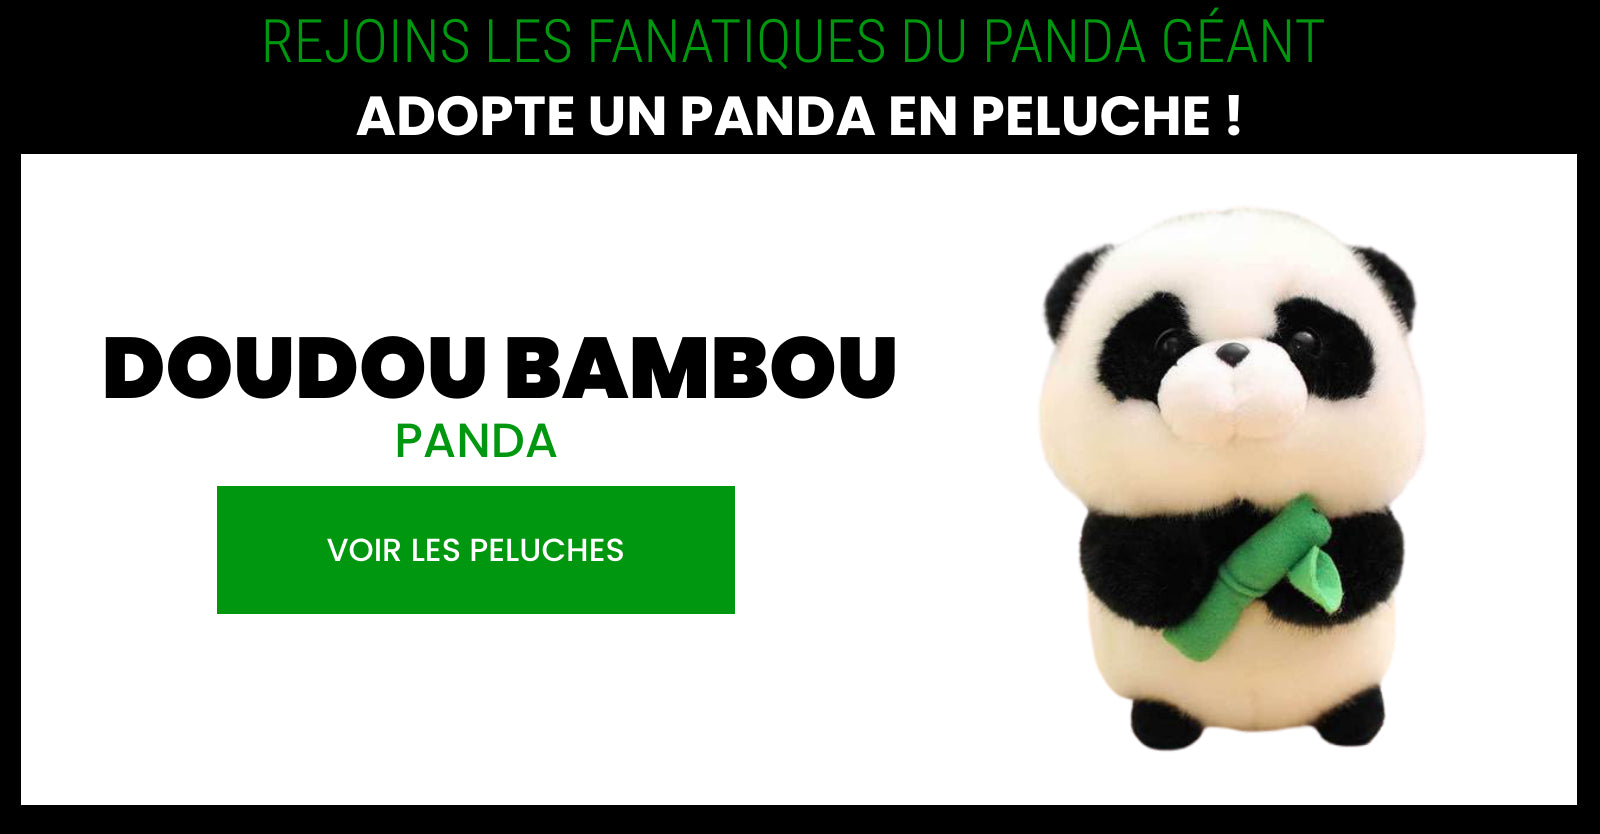 plush panda that man bamboo